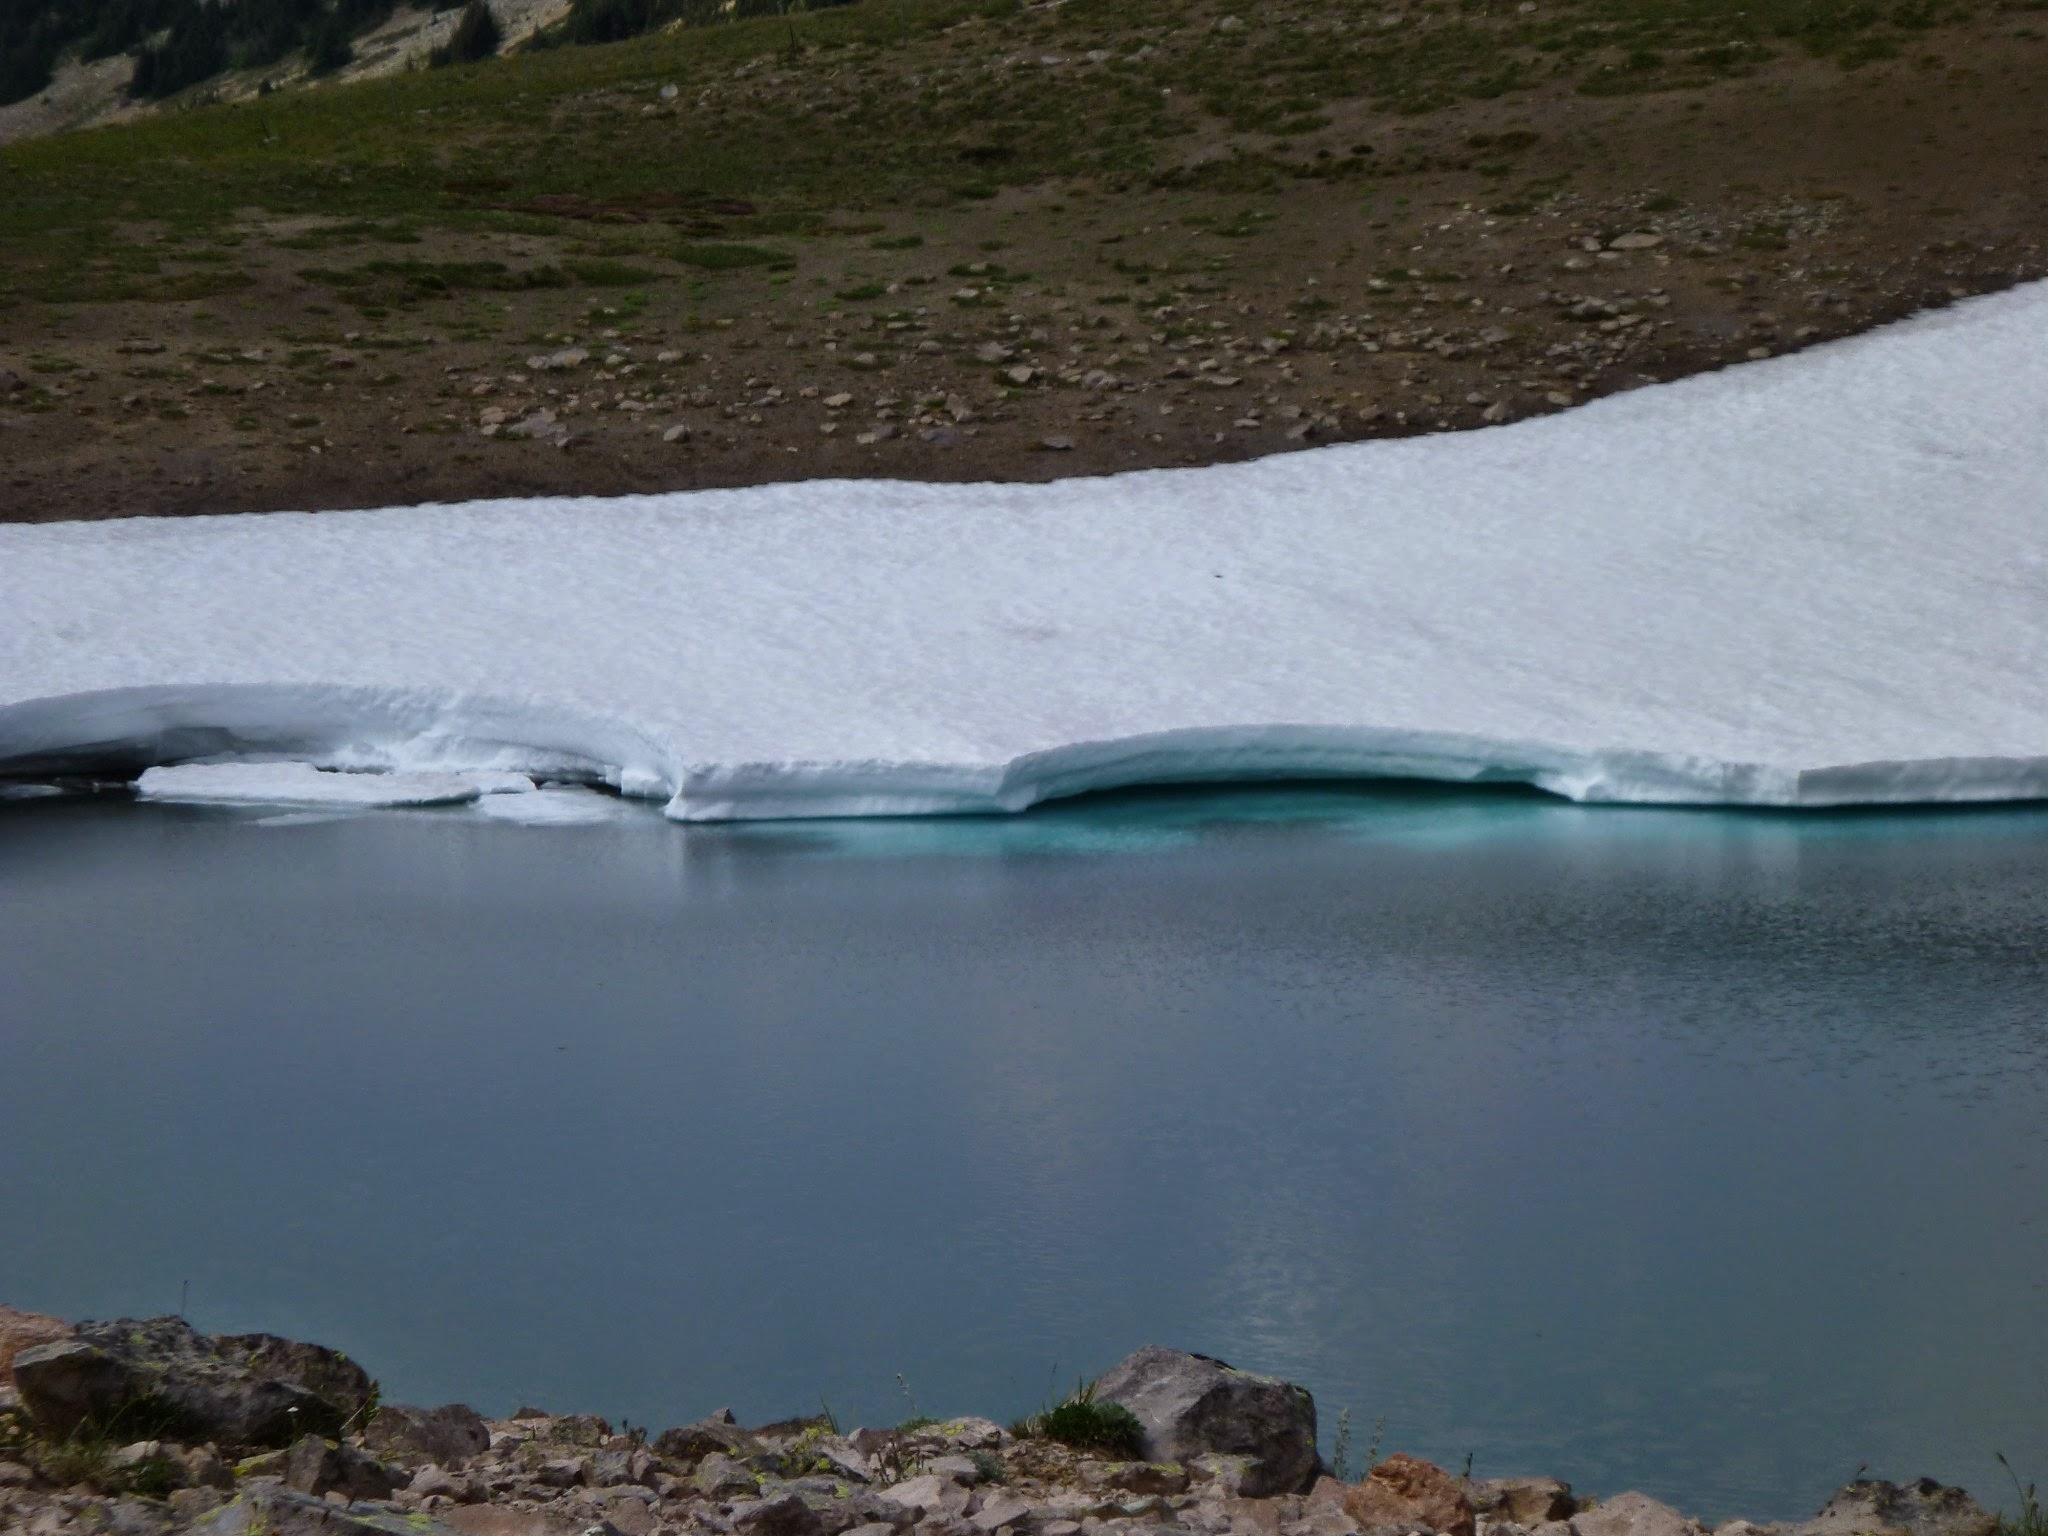 A small blue lake partially surrounded by ice and snow. Bare rocks are visible in the foreground and background